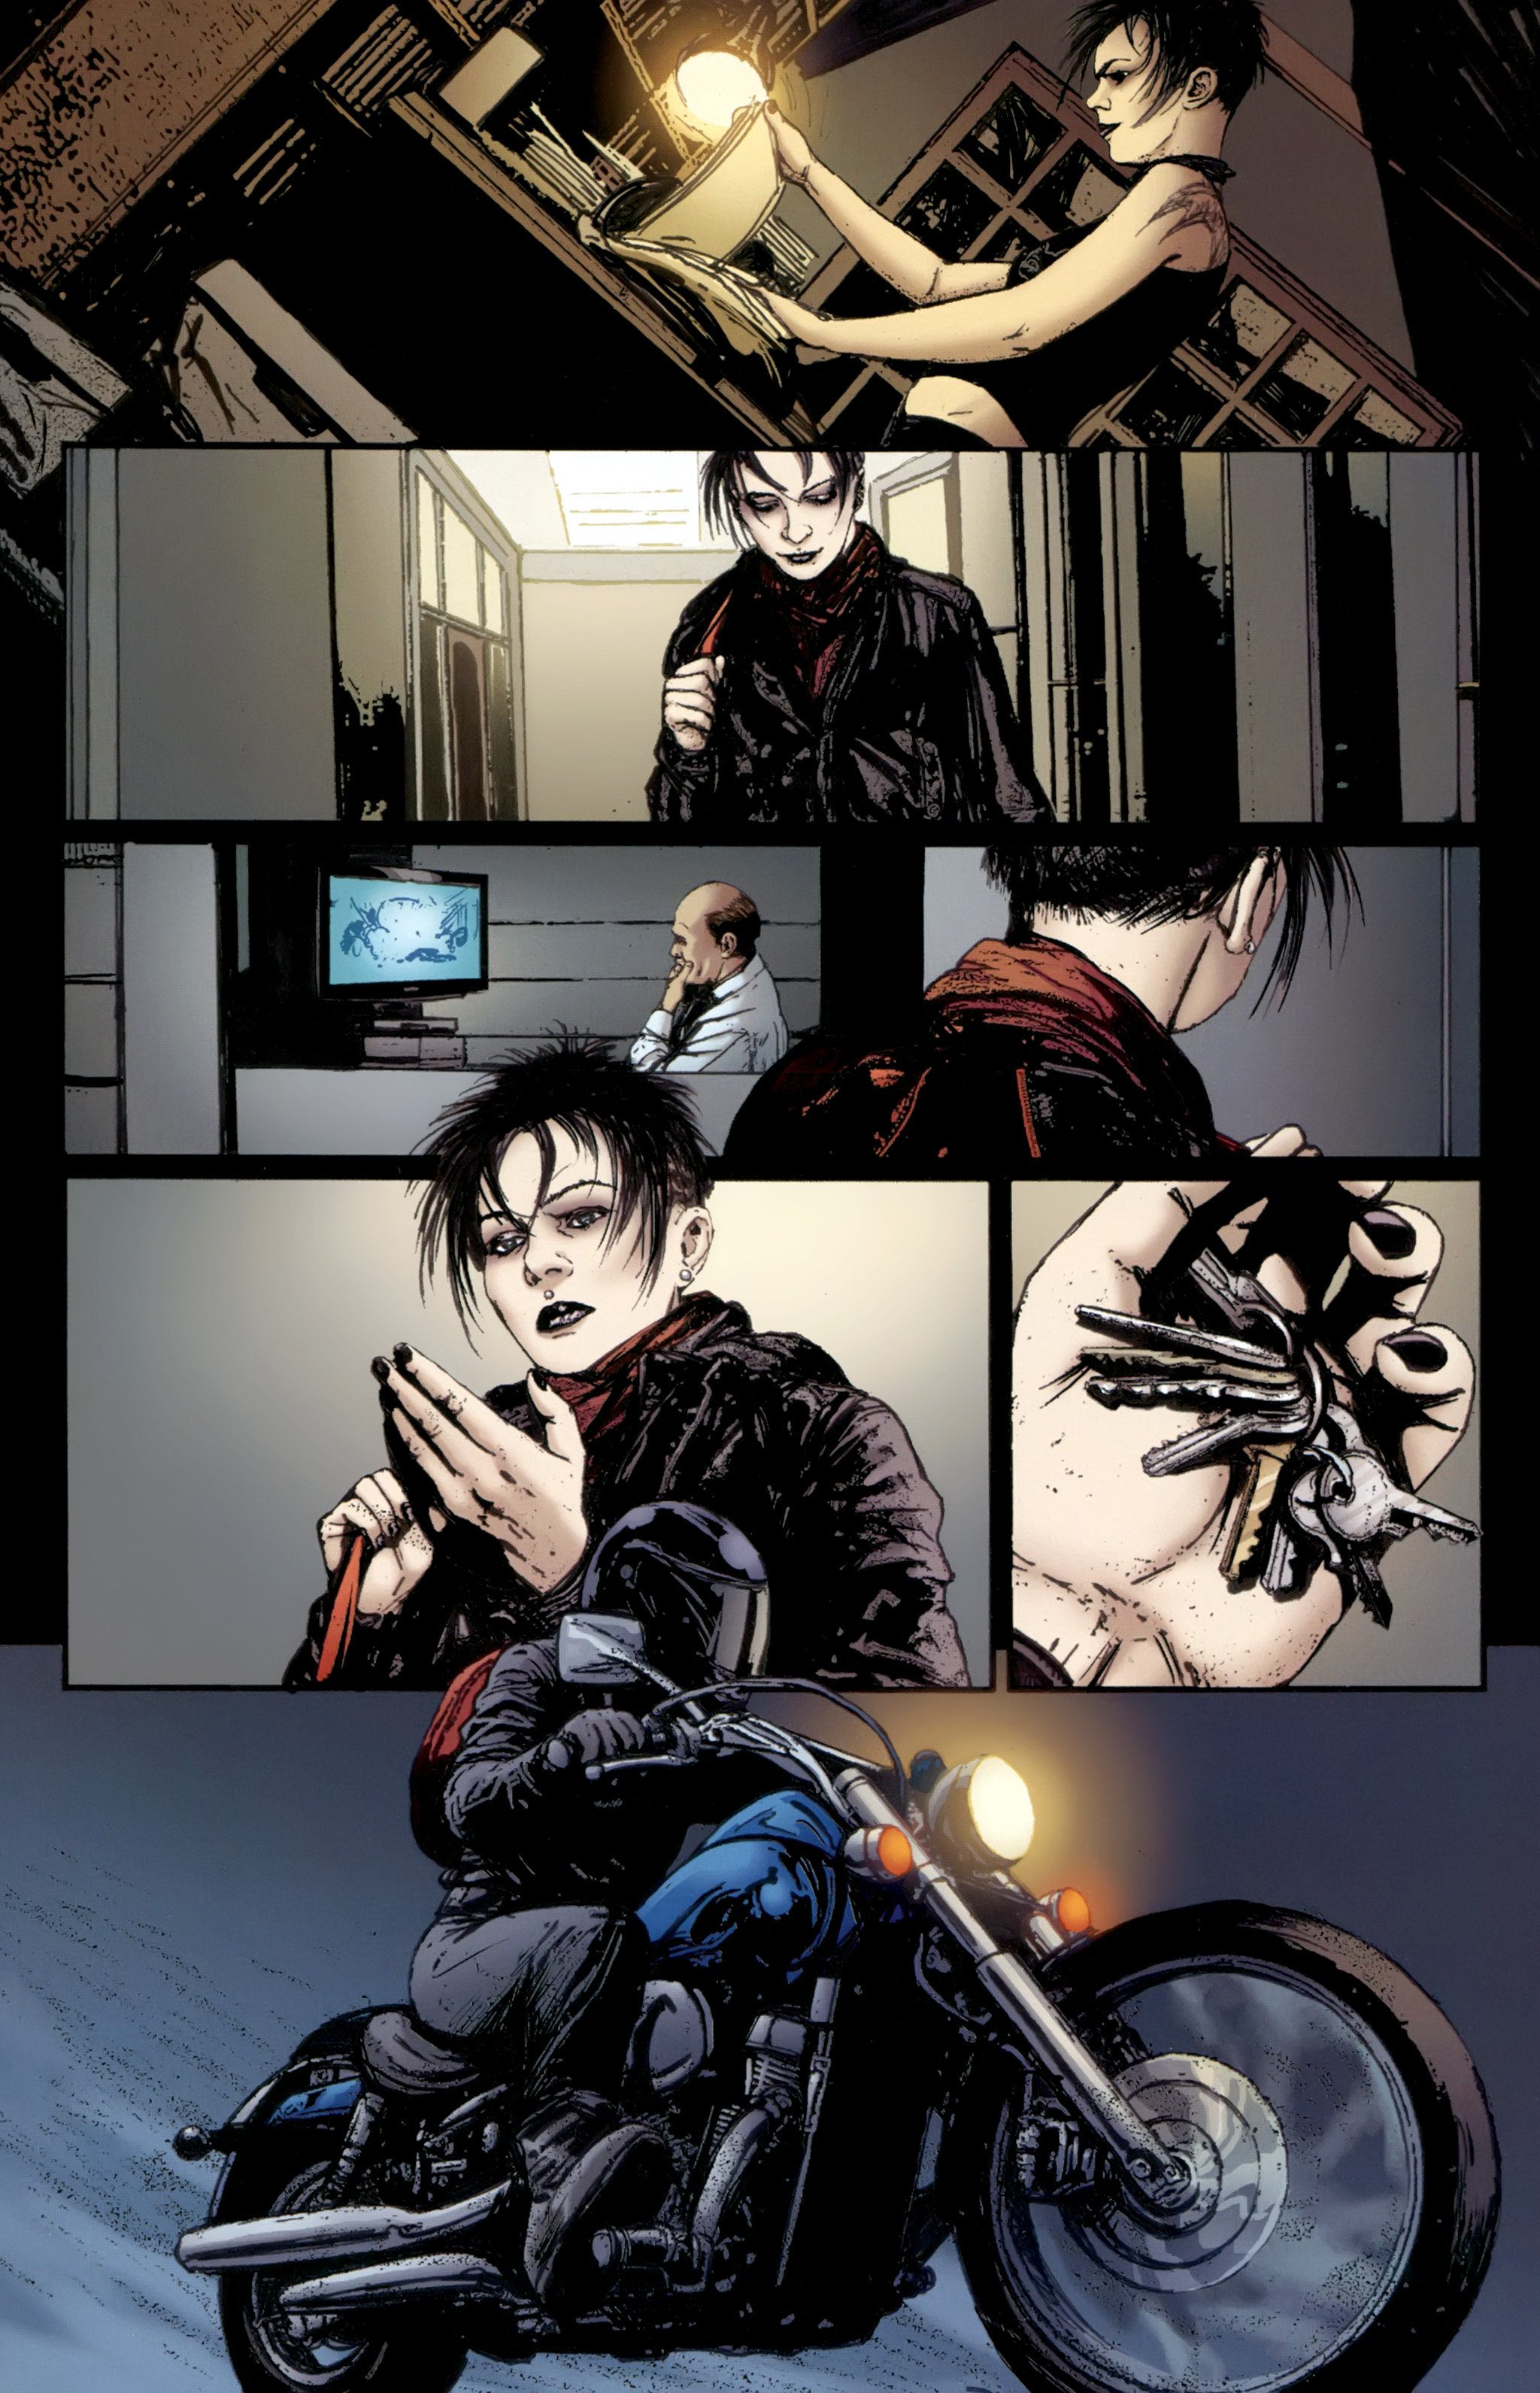 Read online The Girl With the Dragon Tattoo comic -  Issue # TPB 2 - 90